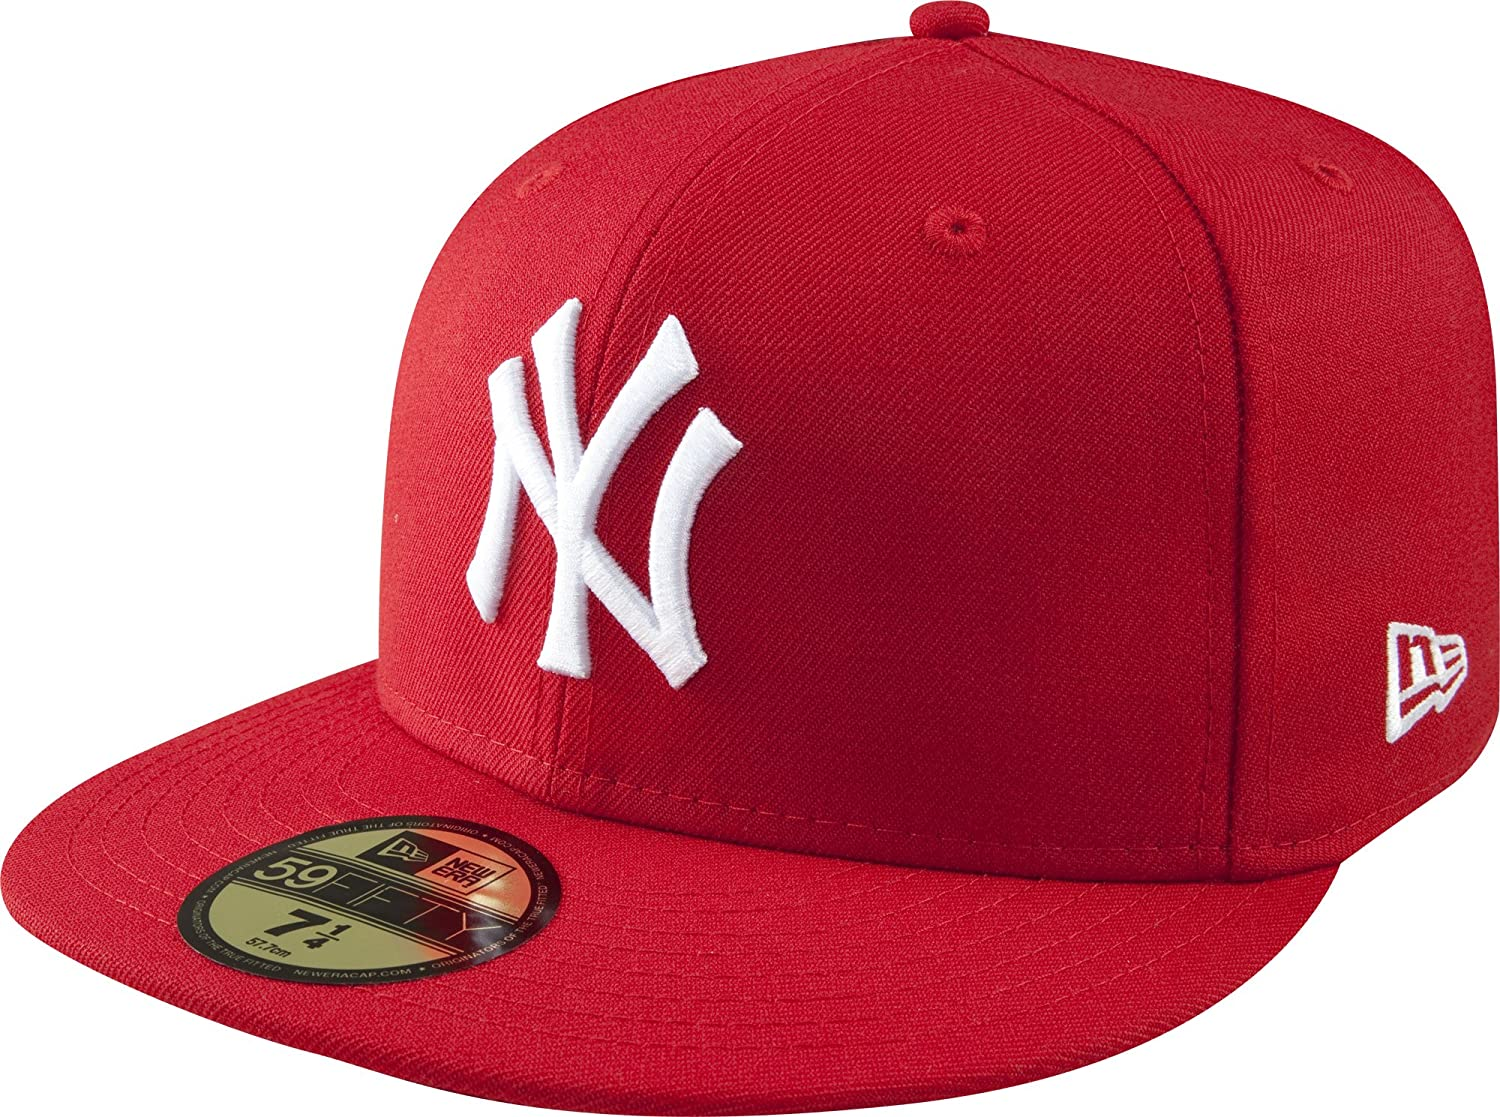 MLB New York Yankees Scarlet with White 59FIFTY Fitted Cap